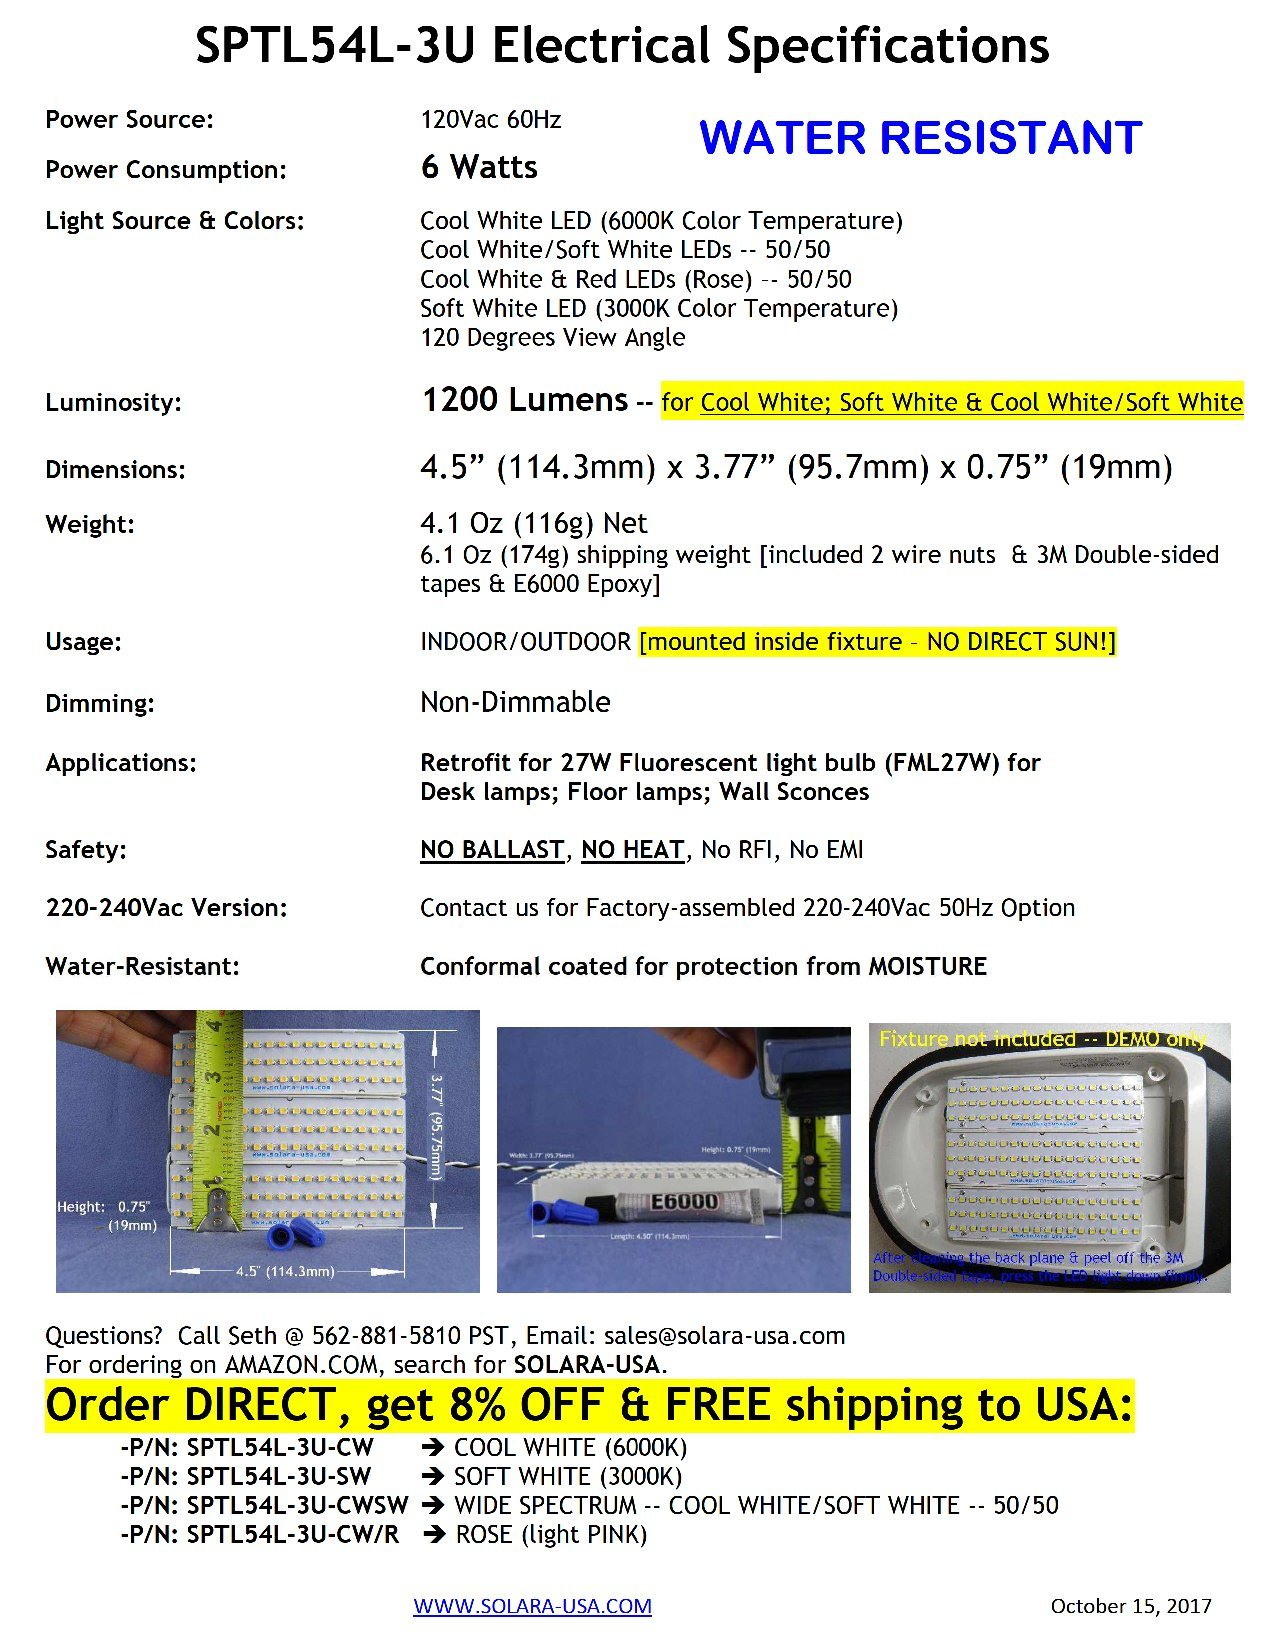 COOL WHITE LED Light (6000K) --1200Lumens 6Watts -- for Conversion of FML27W Fluorescent lamps. P/N: SPTL54L-3U-CW